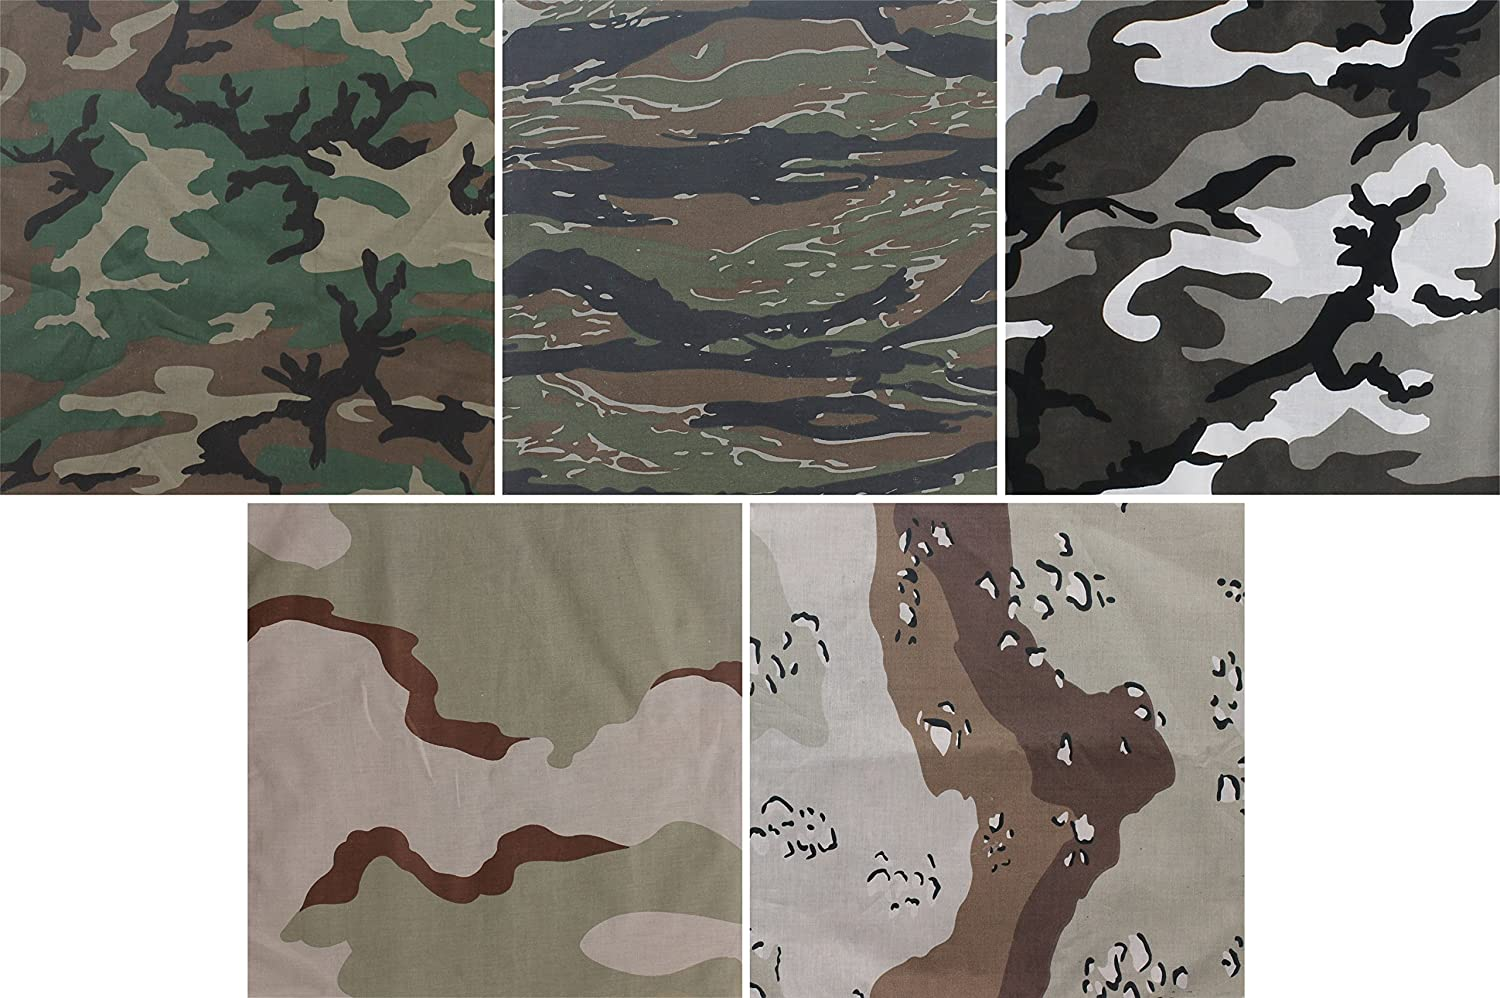 5 Pack - Jumbo Bandanas Camouflage Cotton Military Headwraps 27